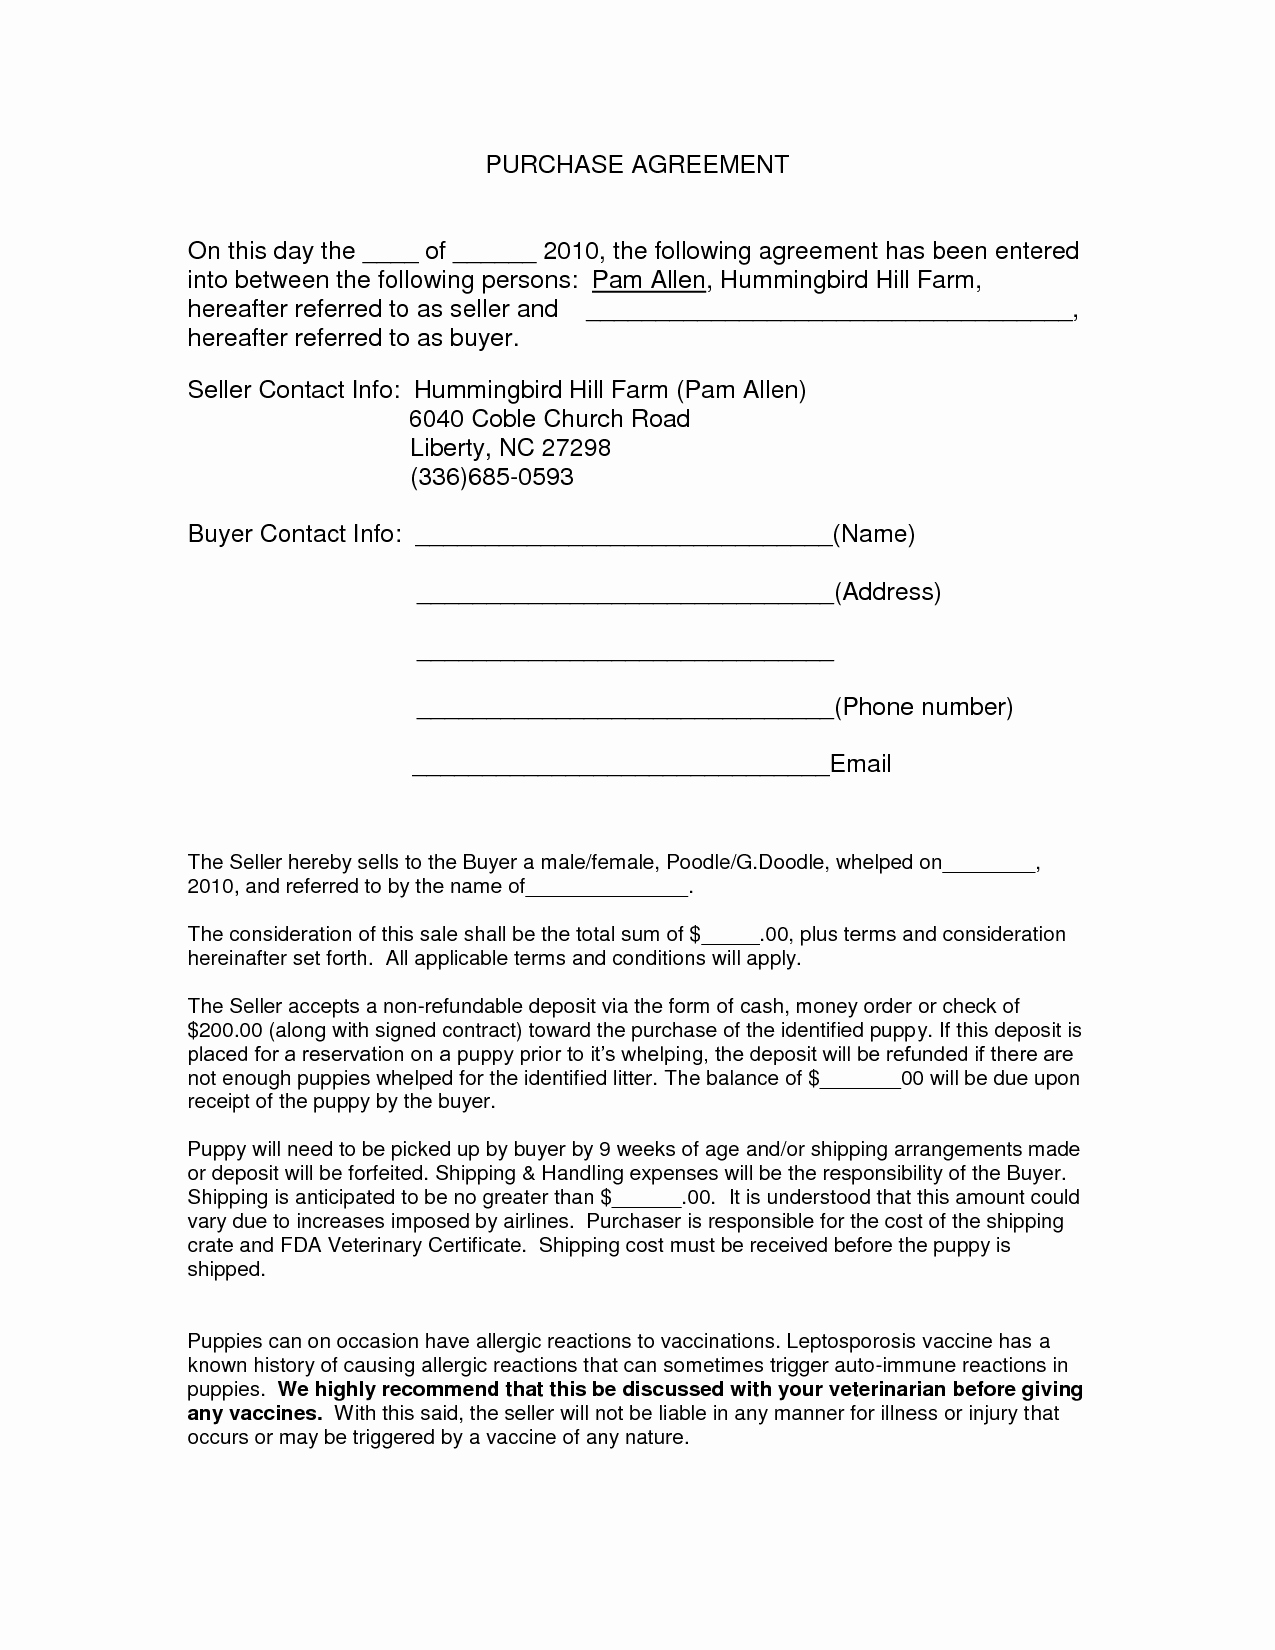 Car Sale Agreement Word Doc Lovely Auto Purchase Agreement form Doc by Nyy Purchase